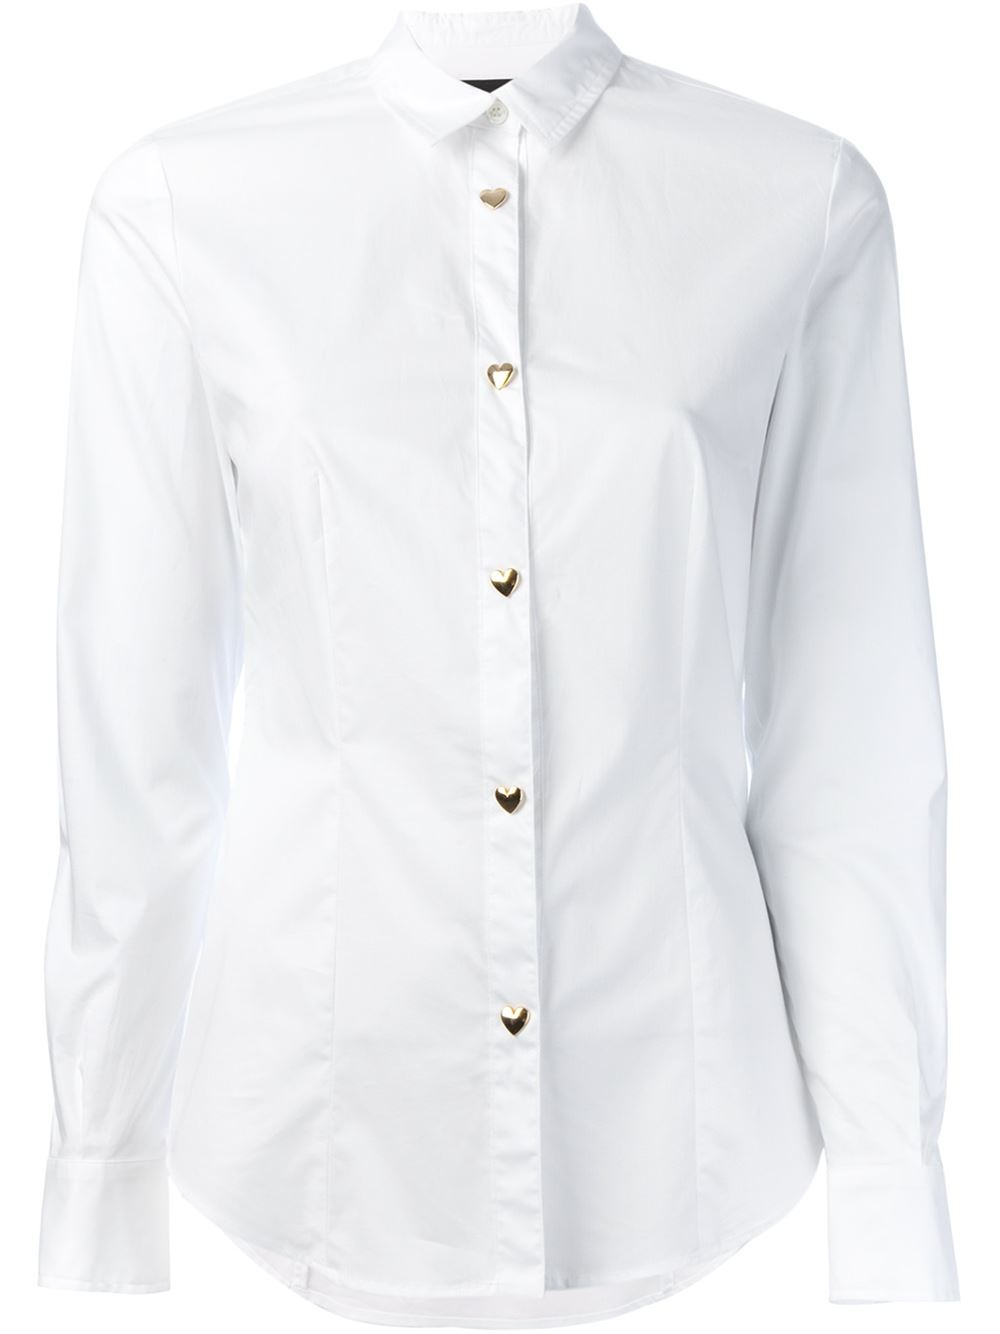 White Shirt With Gold Buttons Custom Shirt